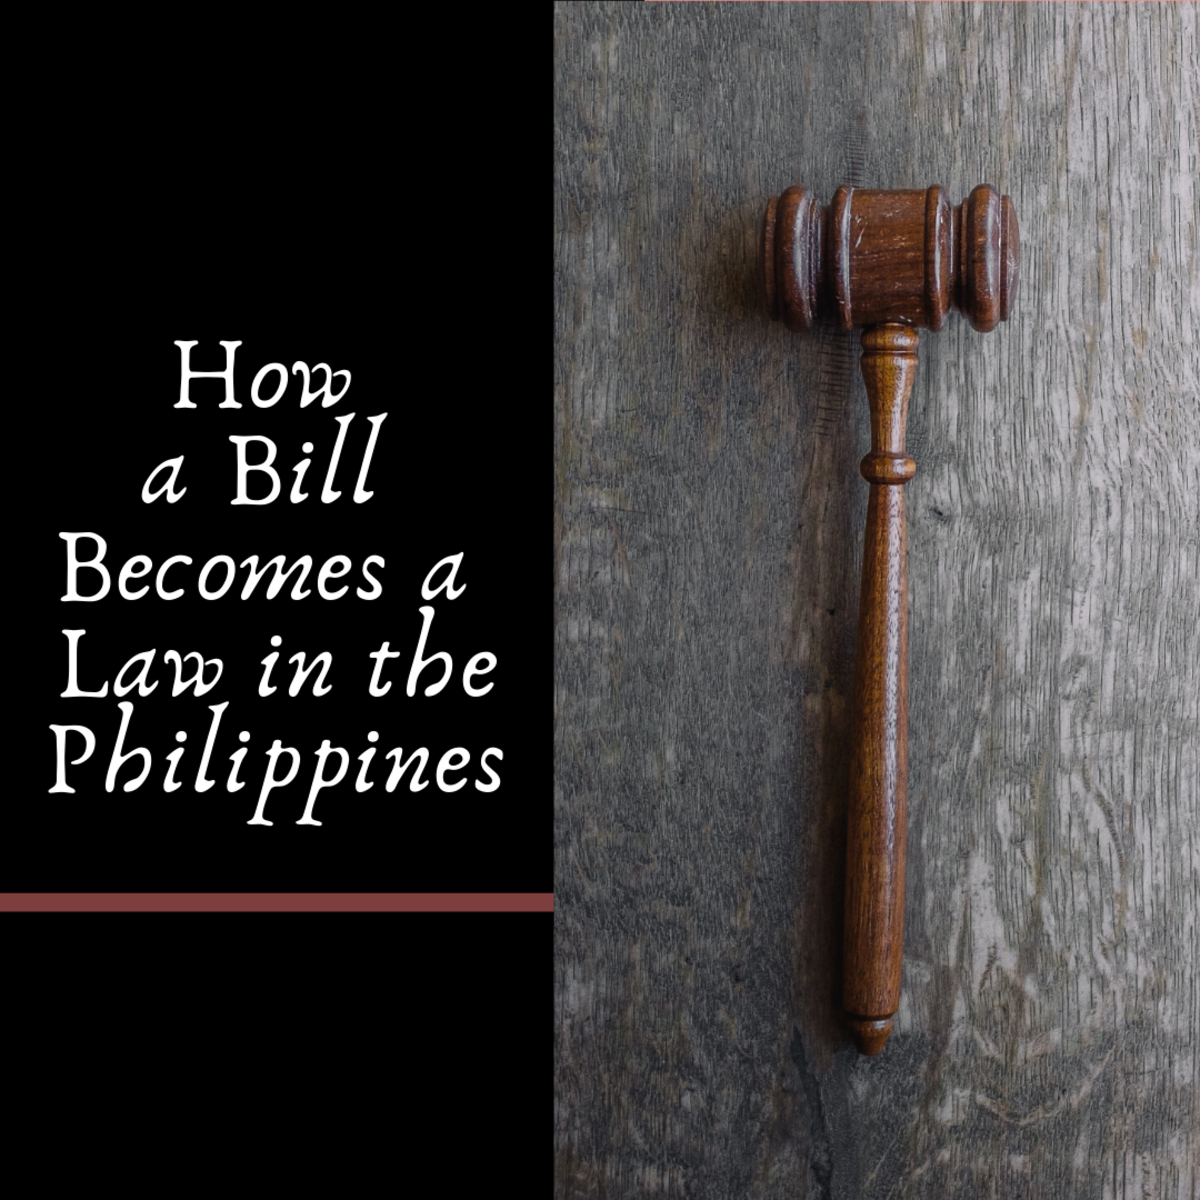 Ever wondered how a bill becomes a law in the Philippines? Read on to learn more.